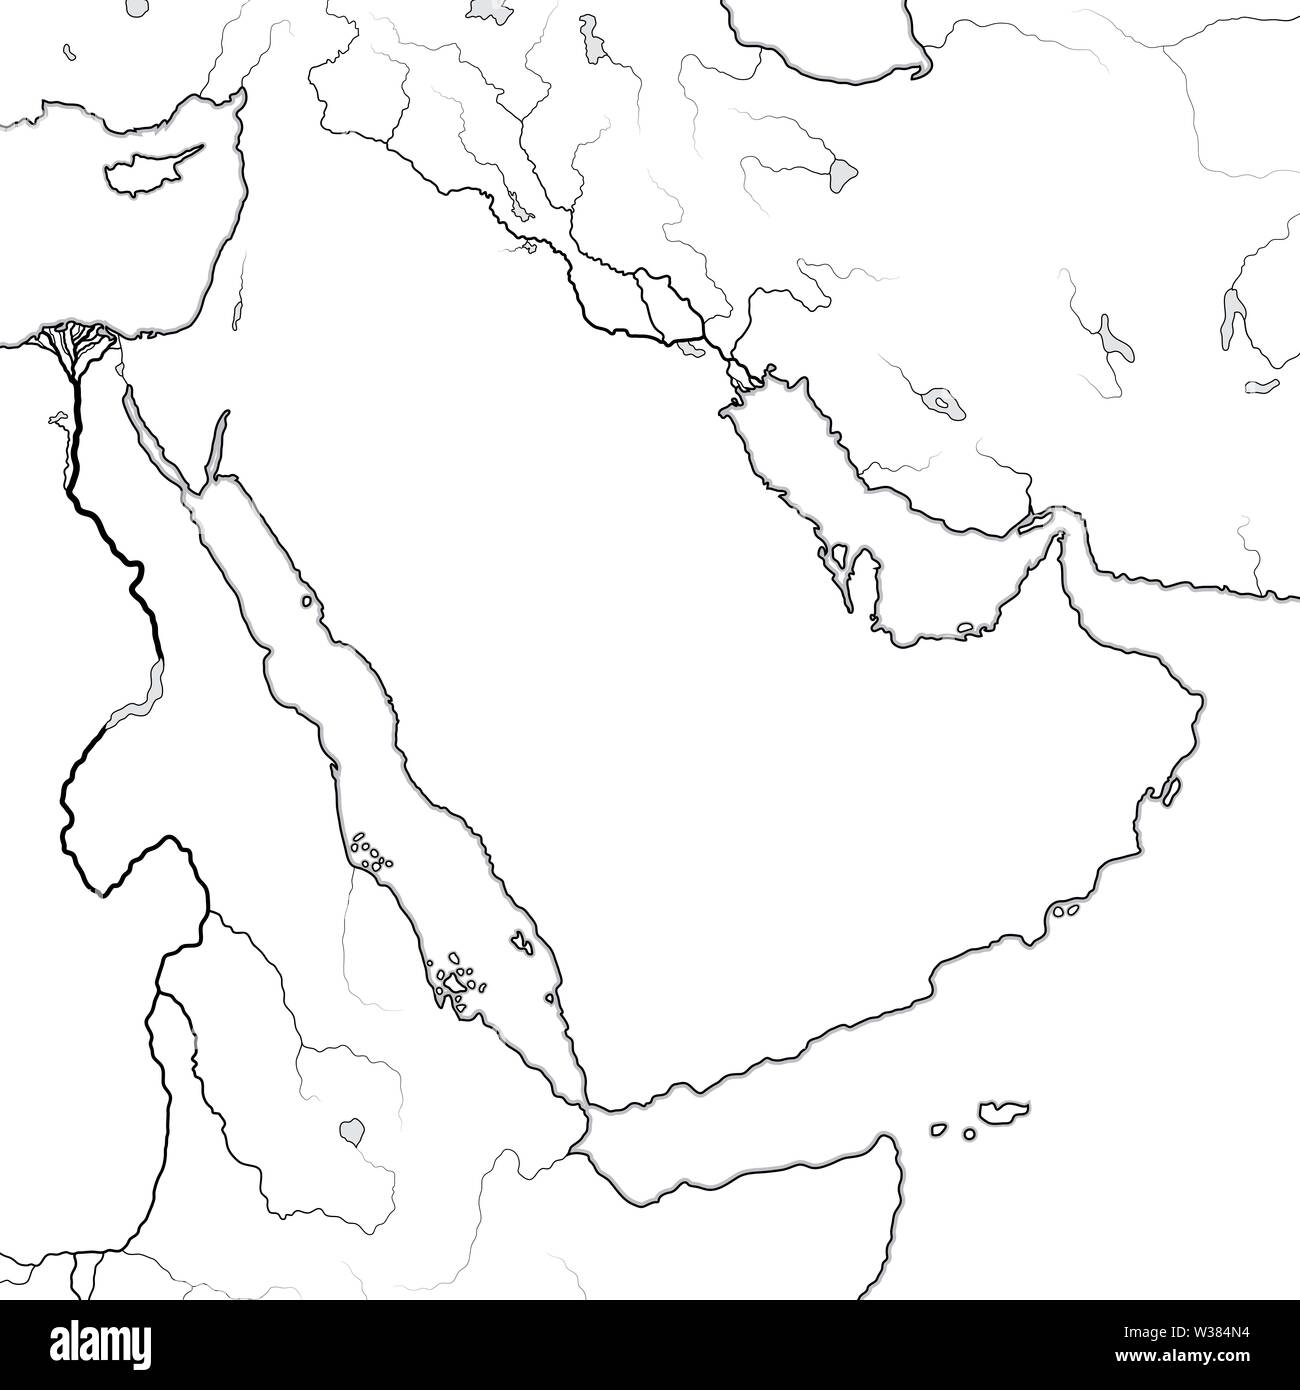 Arab World Map Stock Photos & Arab World Map Stock Images - Alamy on world map in oman, world map in kuwait, world map in bahrain,